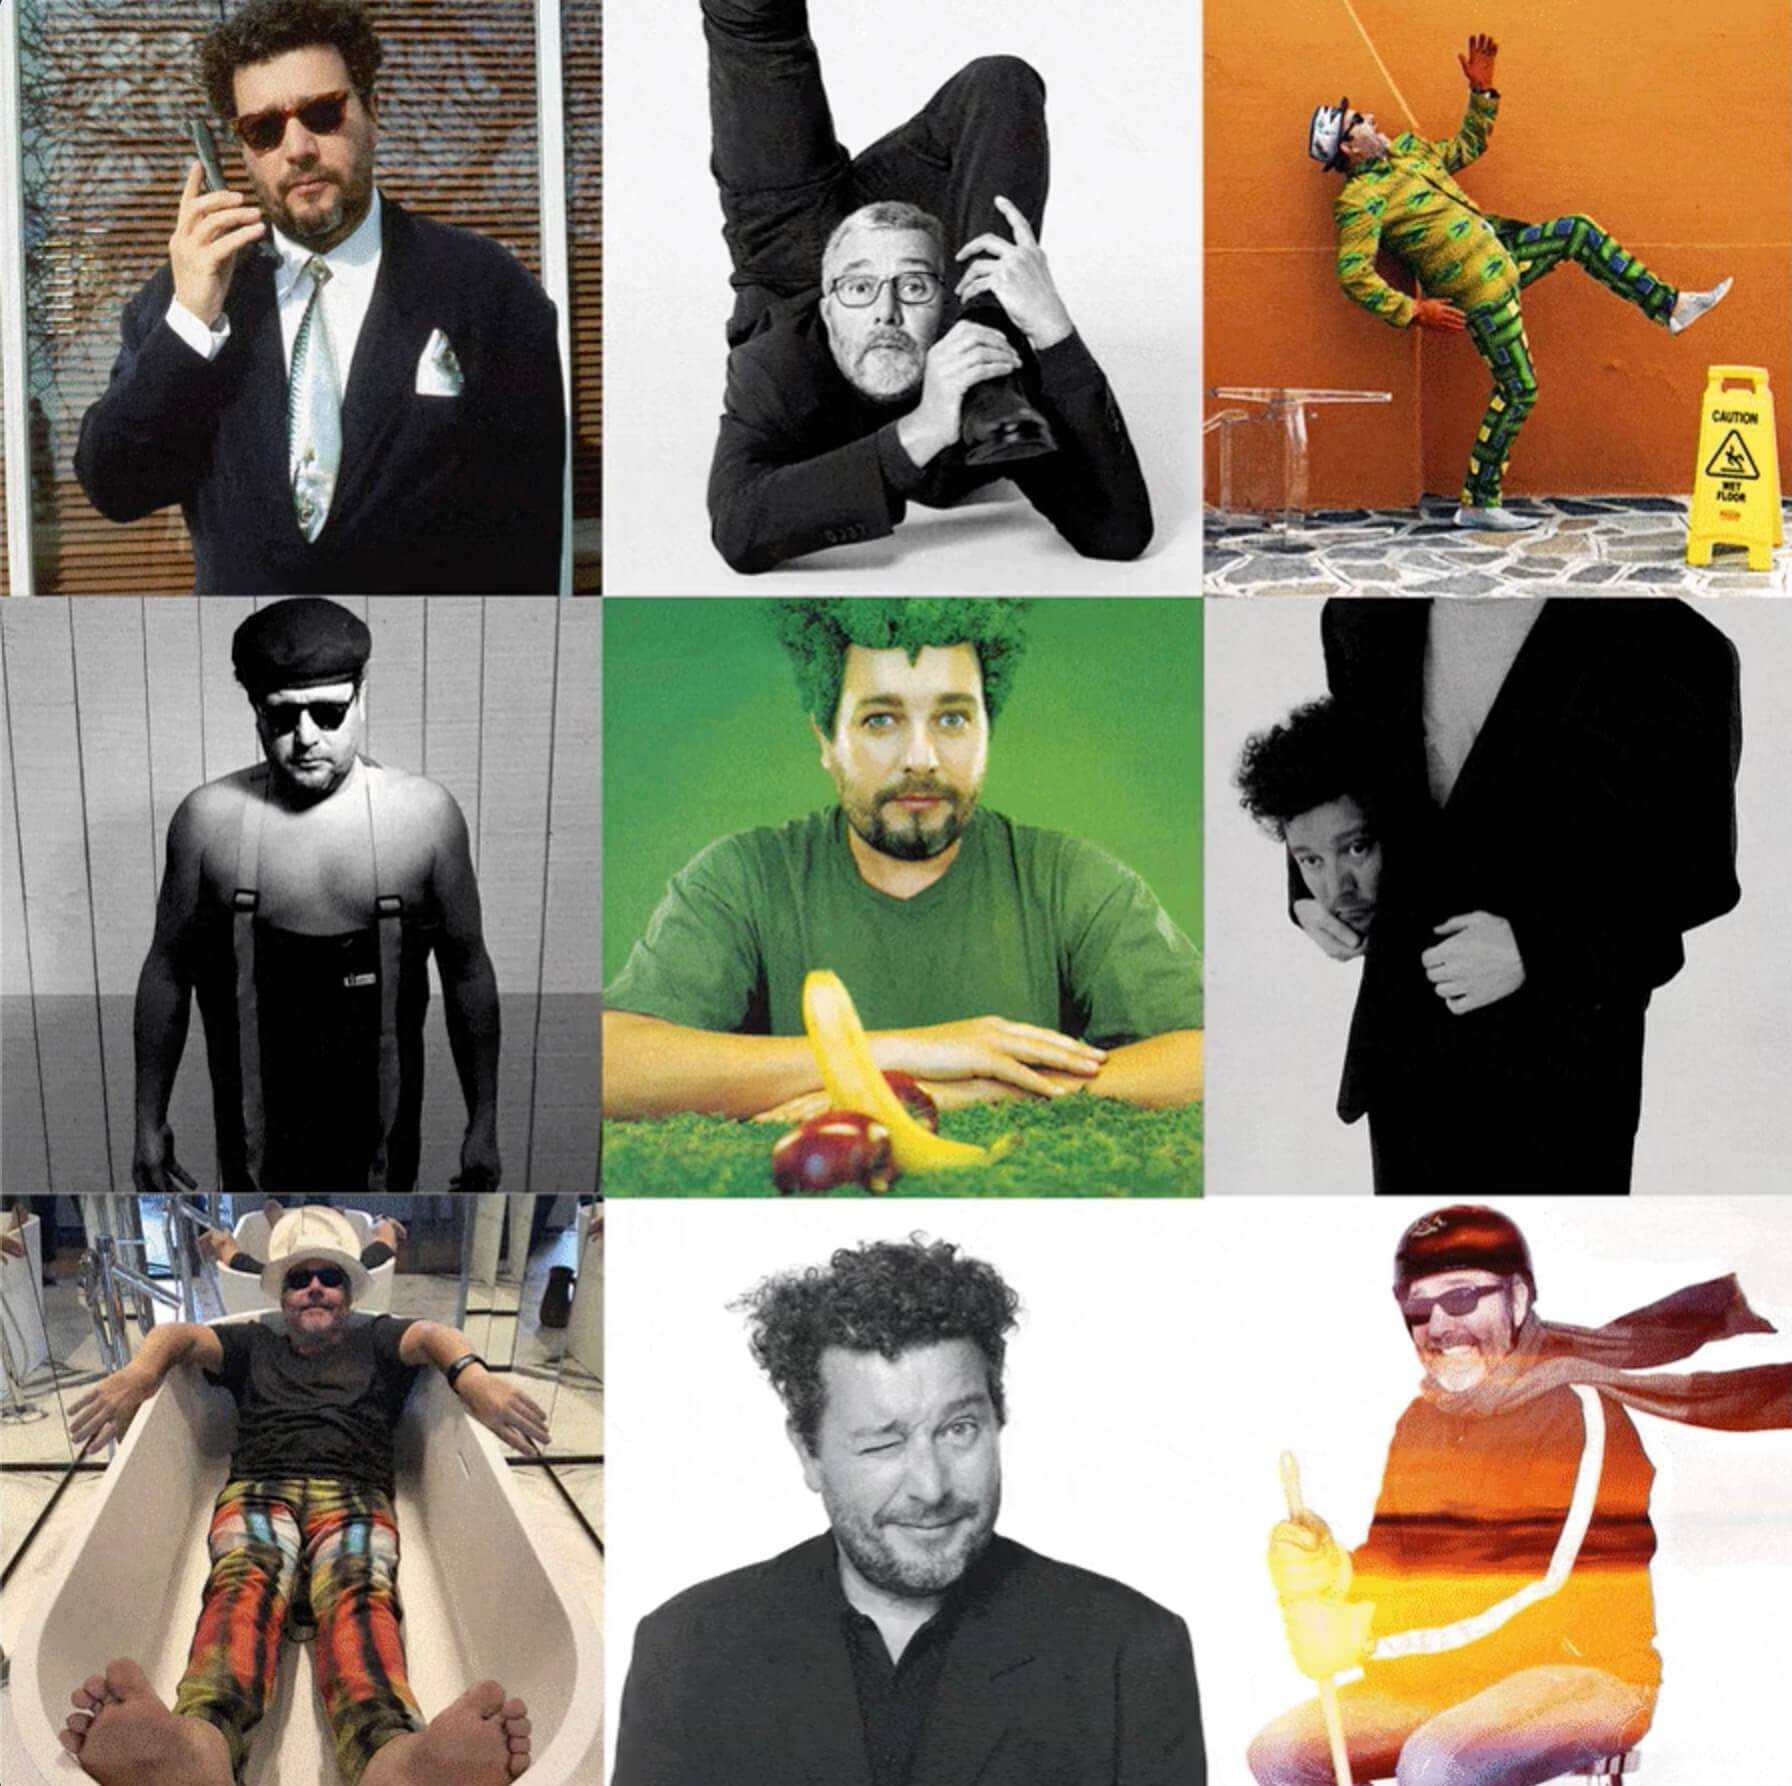 INTERVIEW - Philippe Starck on humor